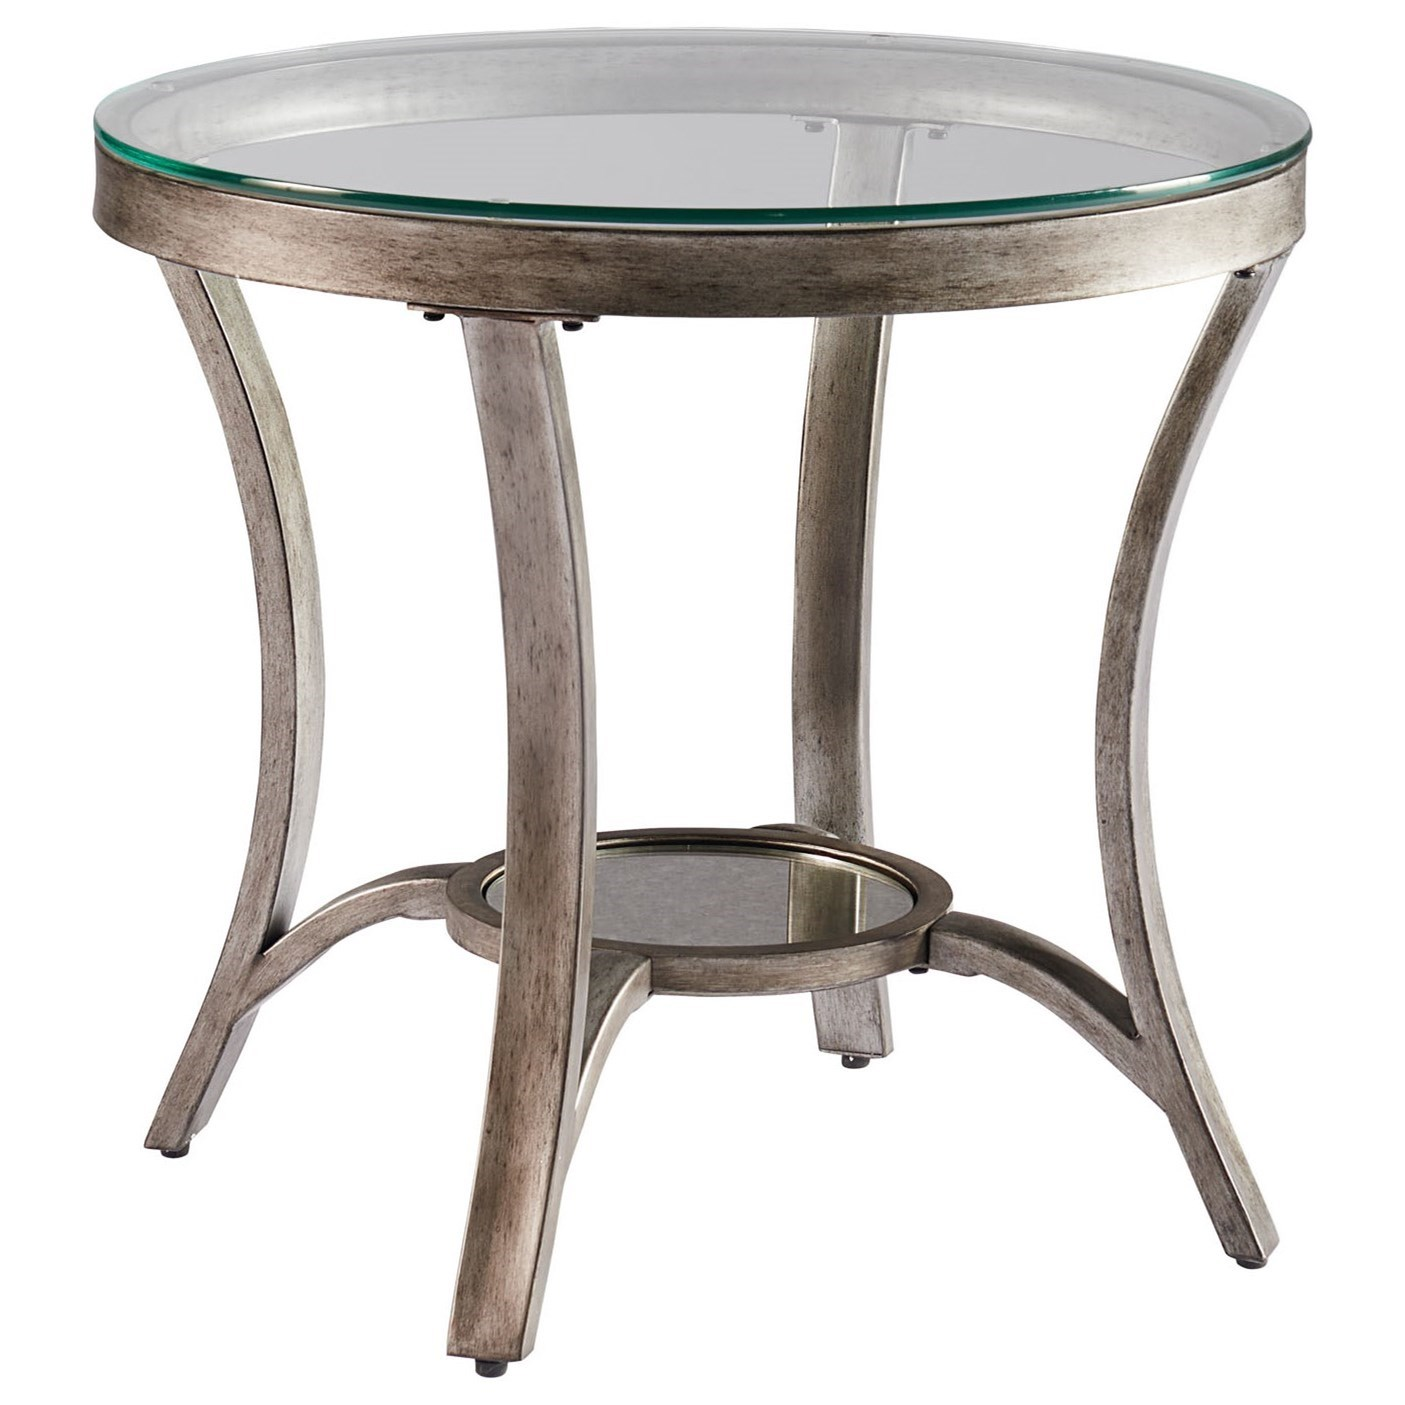 Standard Furniture Cole Round End Table - Item Number: 29302